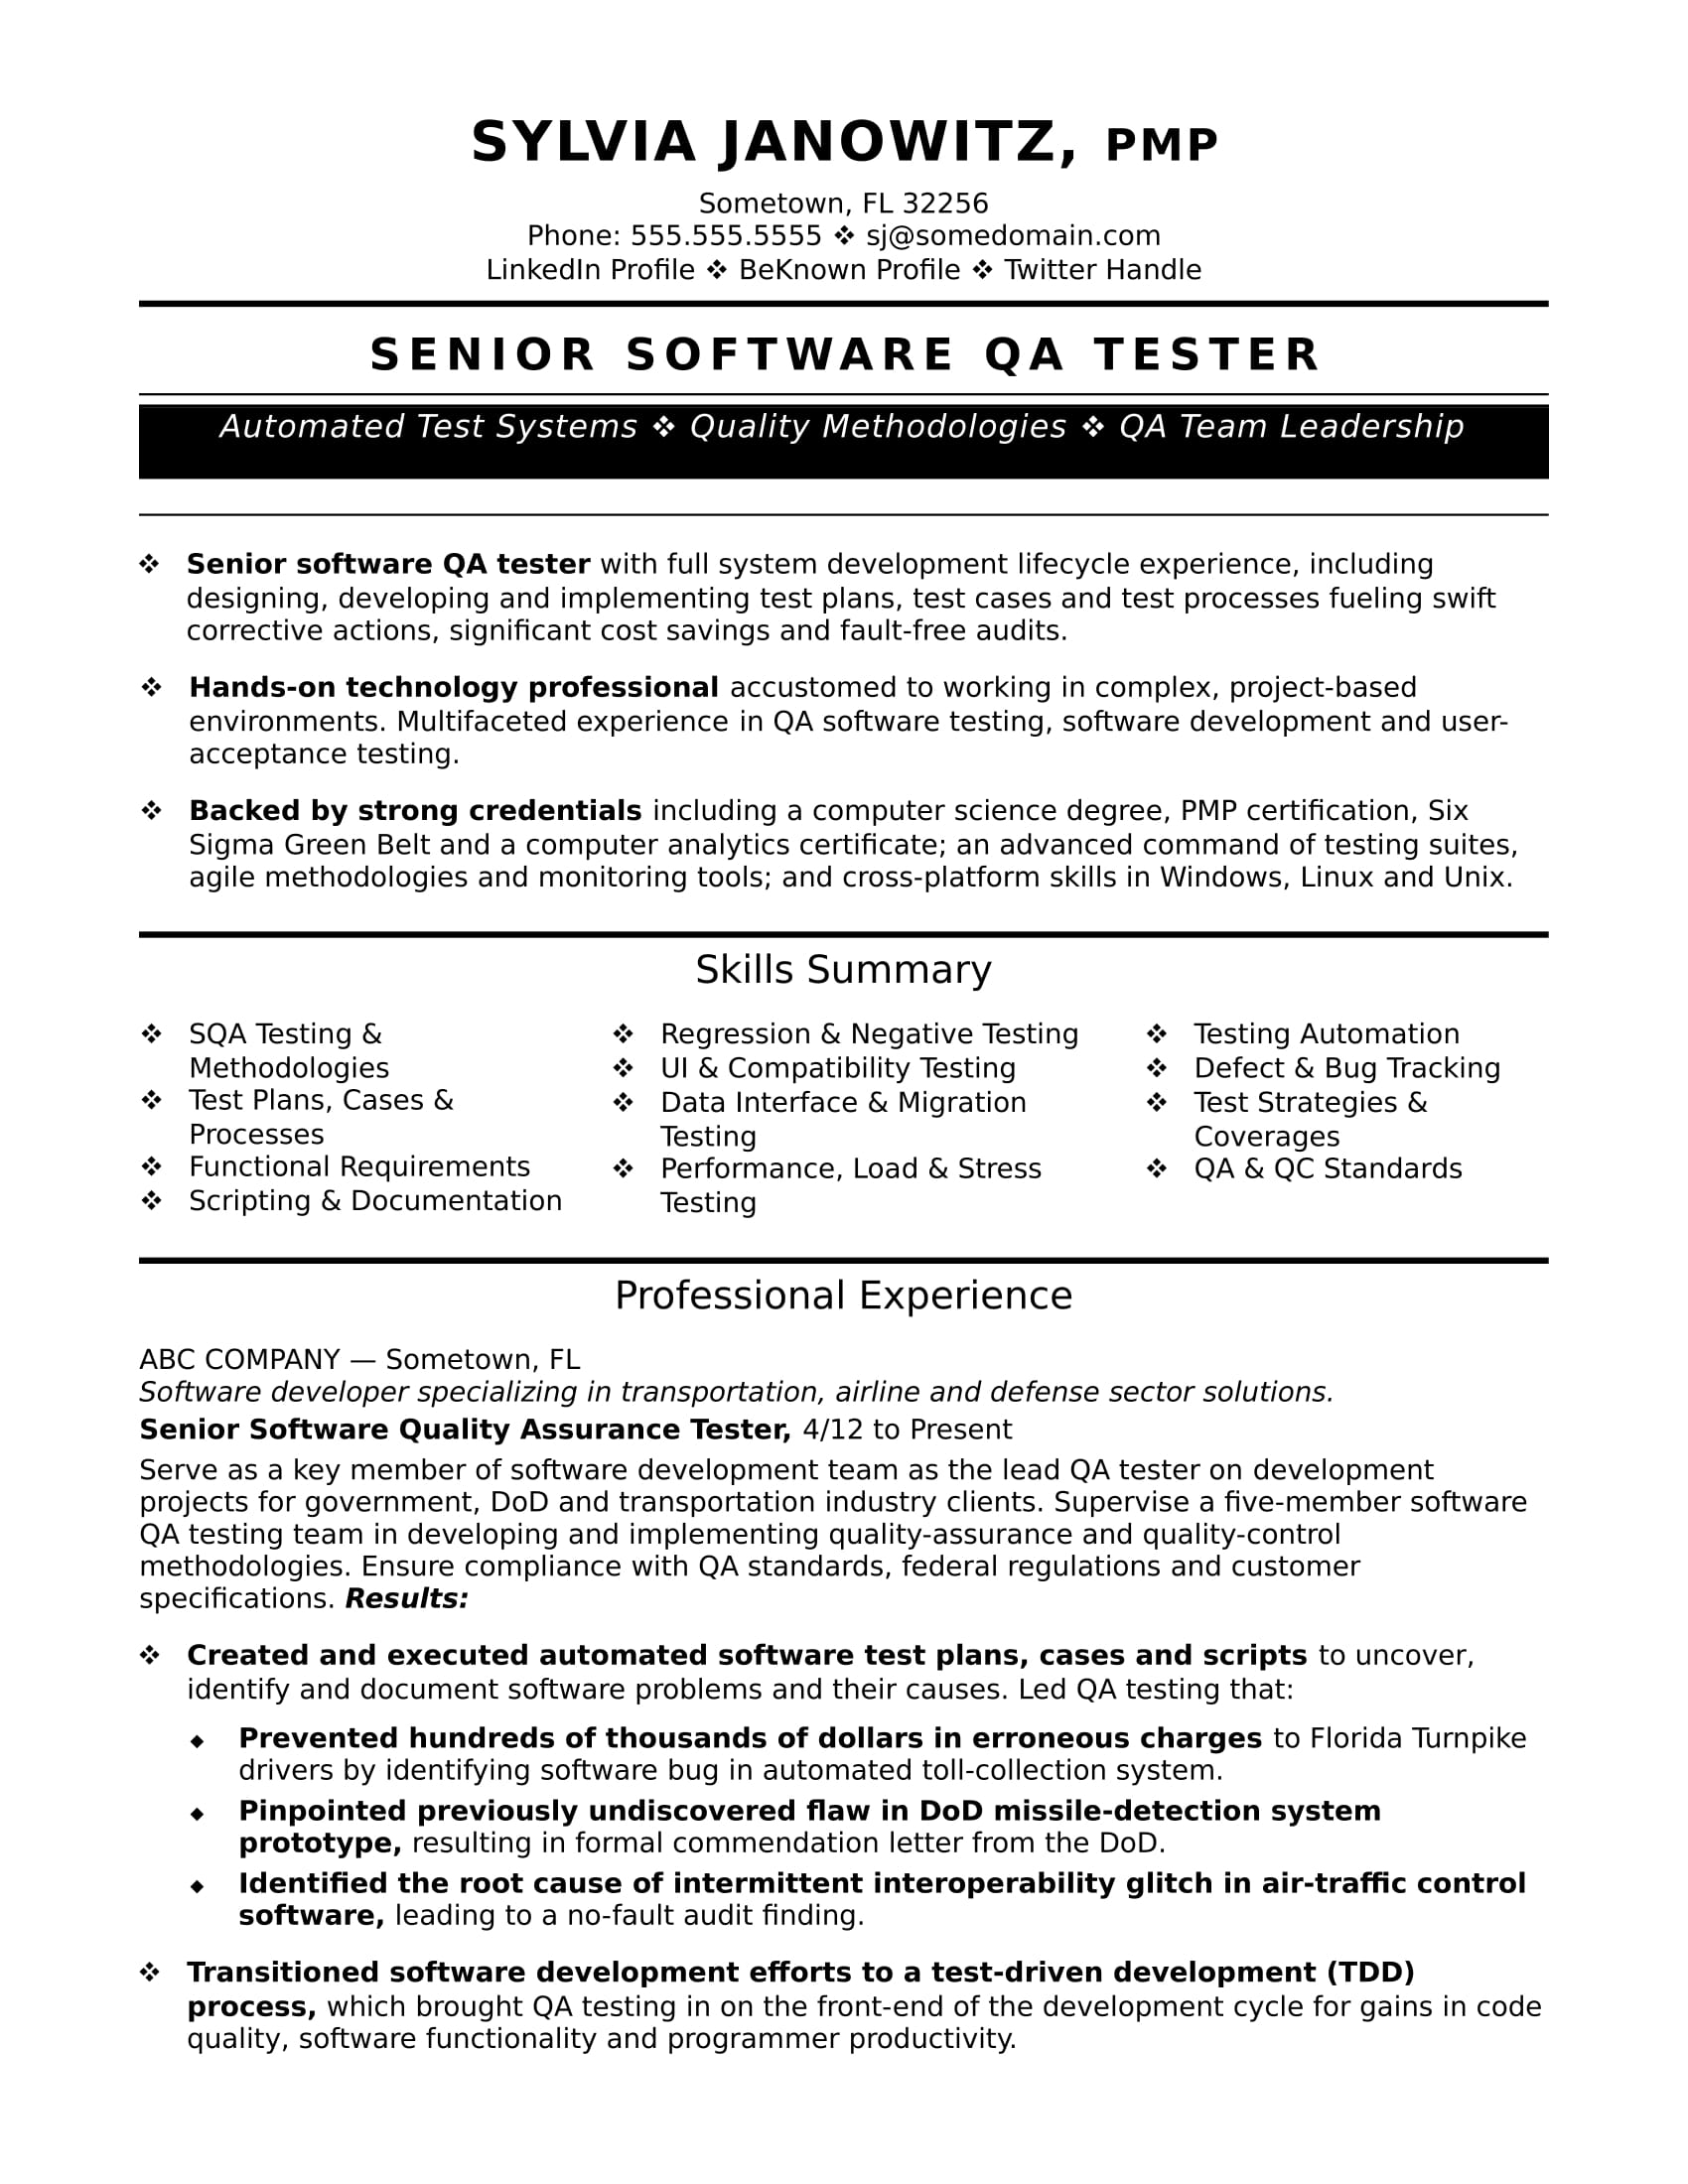 Experienced QA Software Tester Resume Sample  Quality Assurance Resume Examples